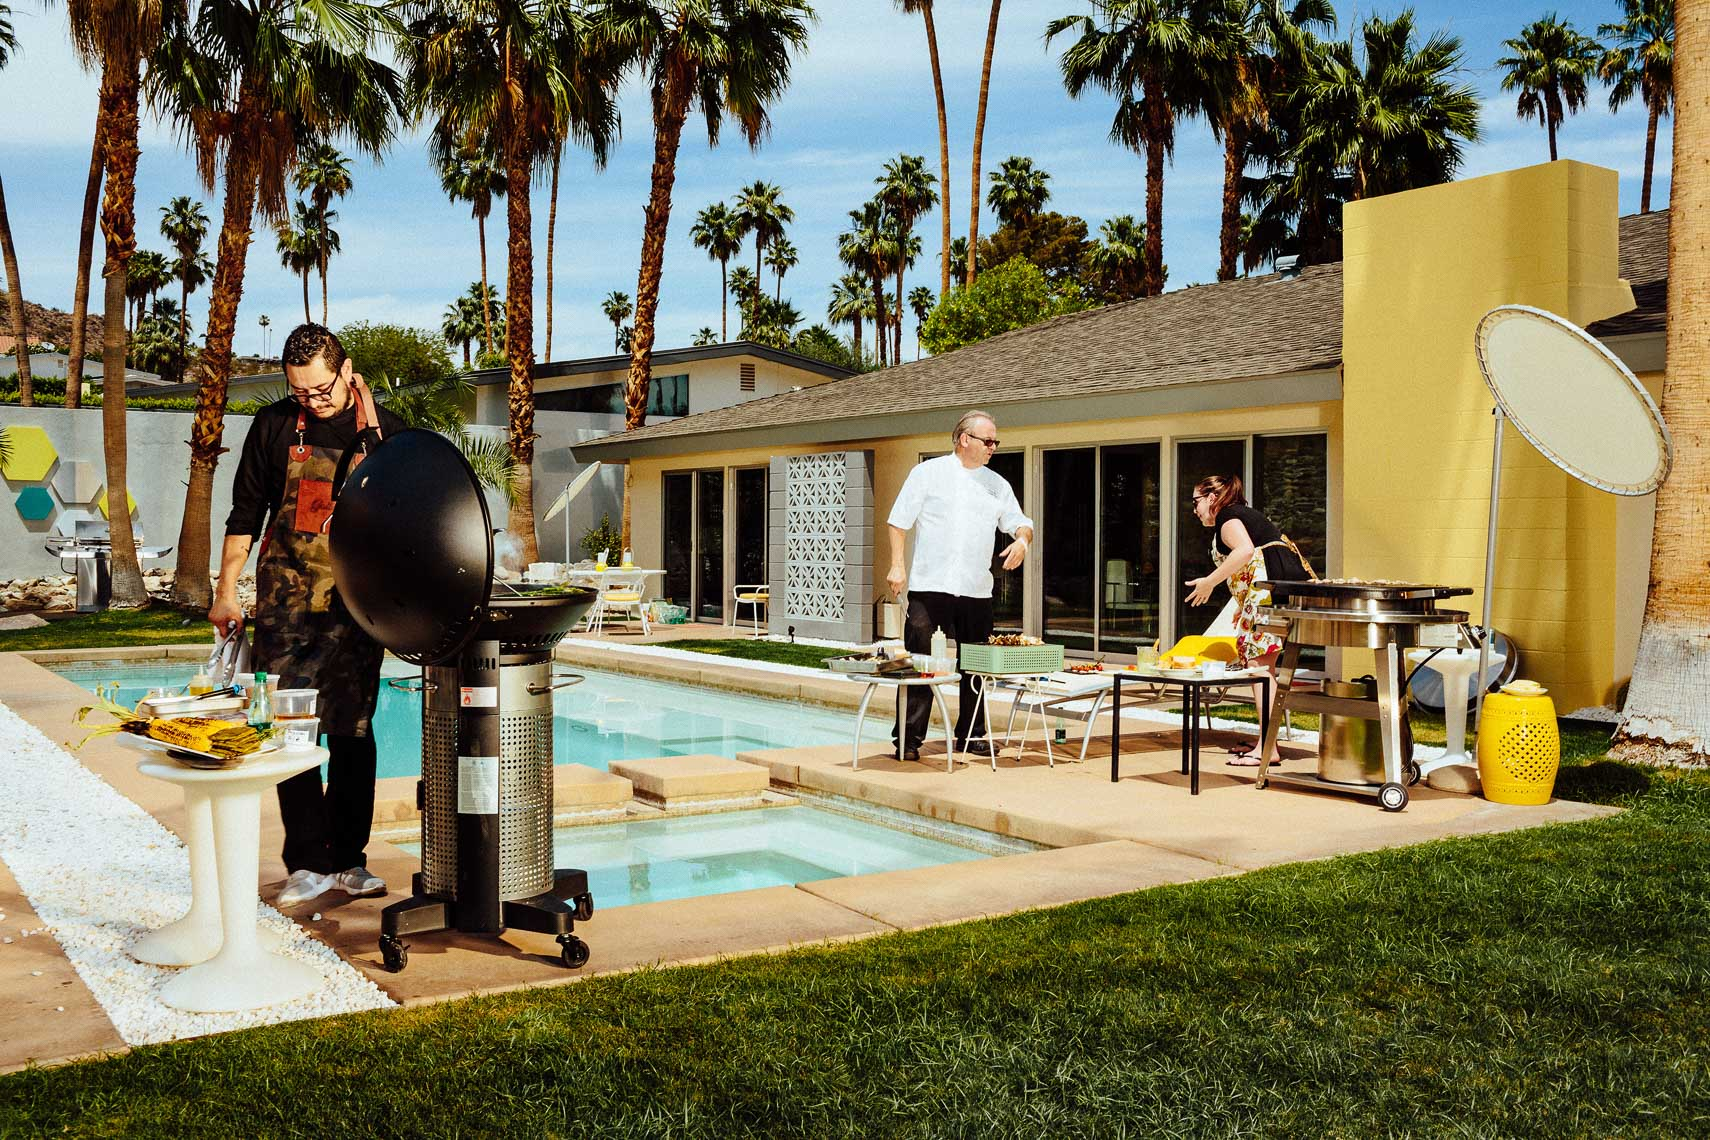 Grill Wars Barbecue photographed for Palm Springs Life magazine